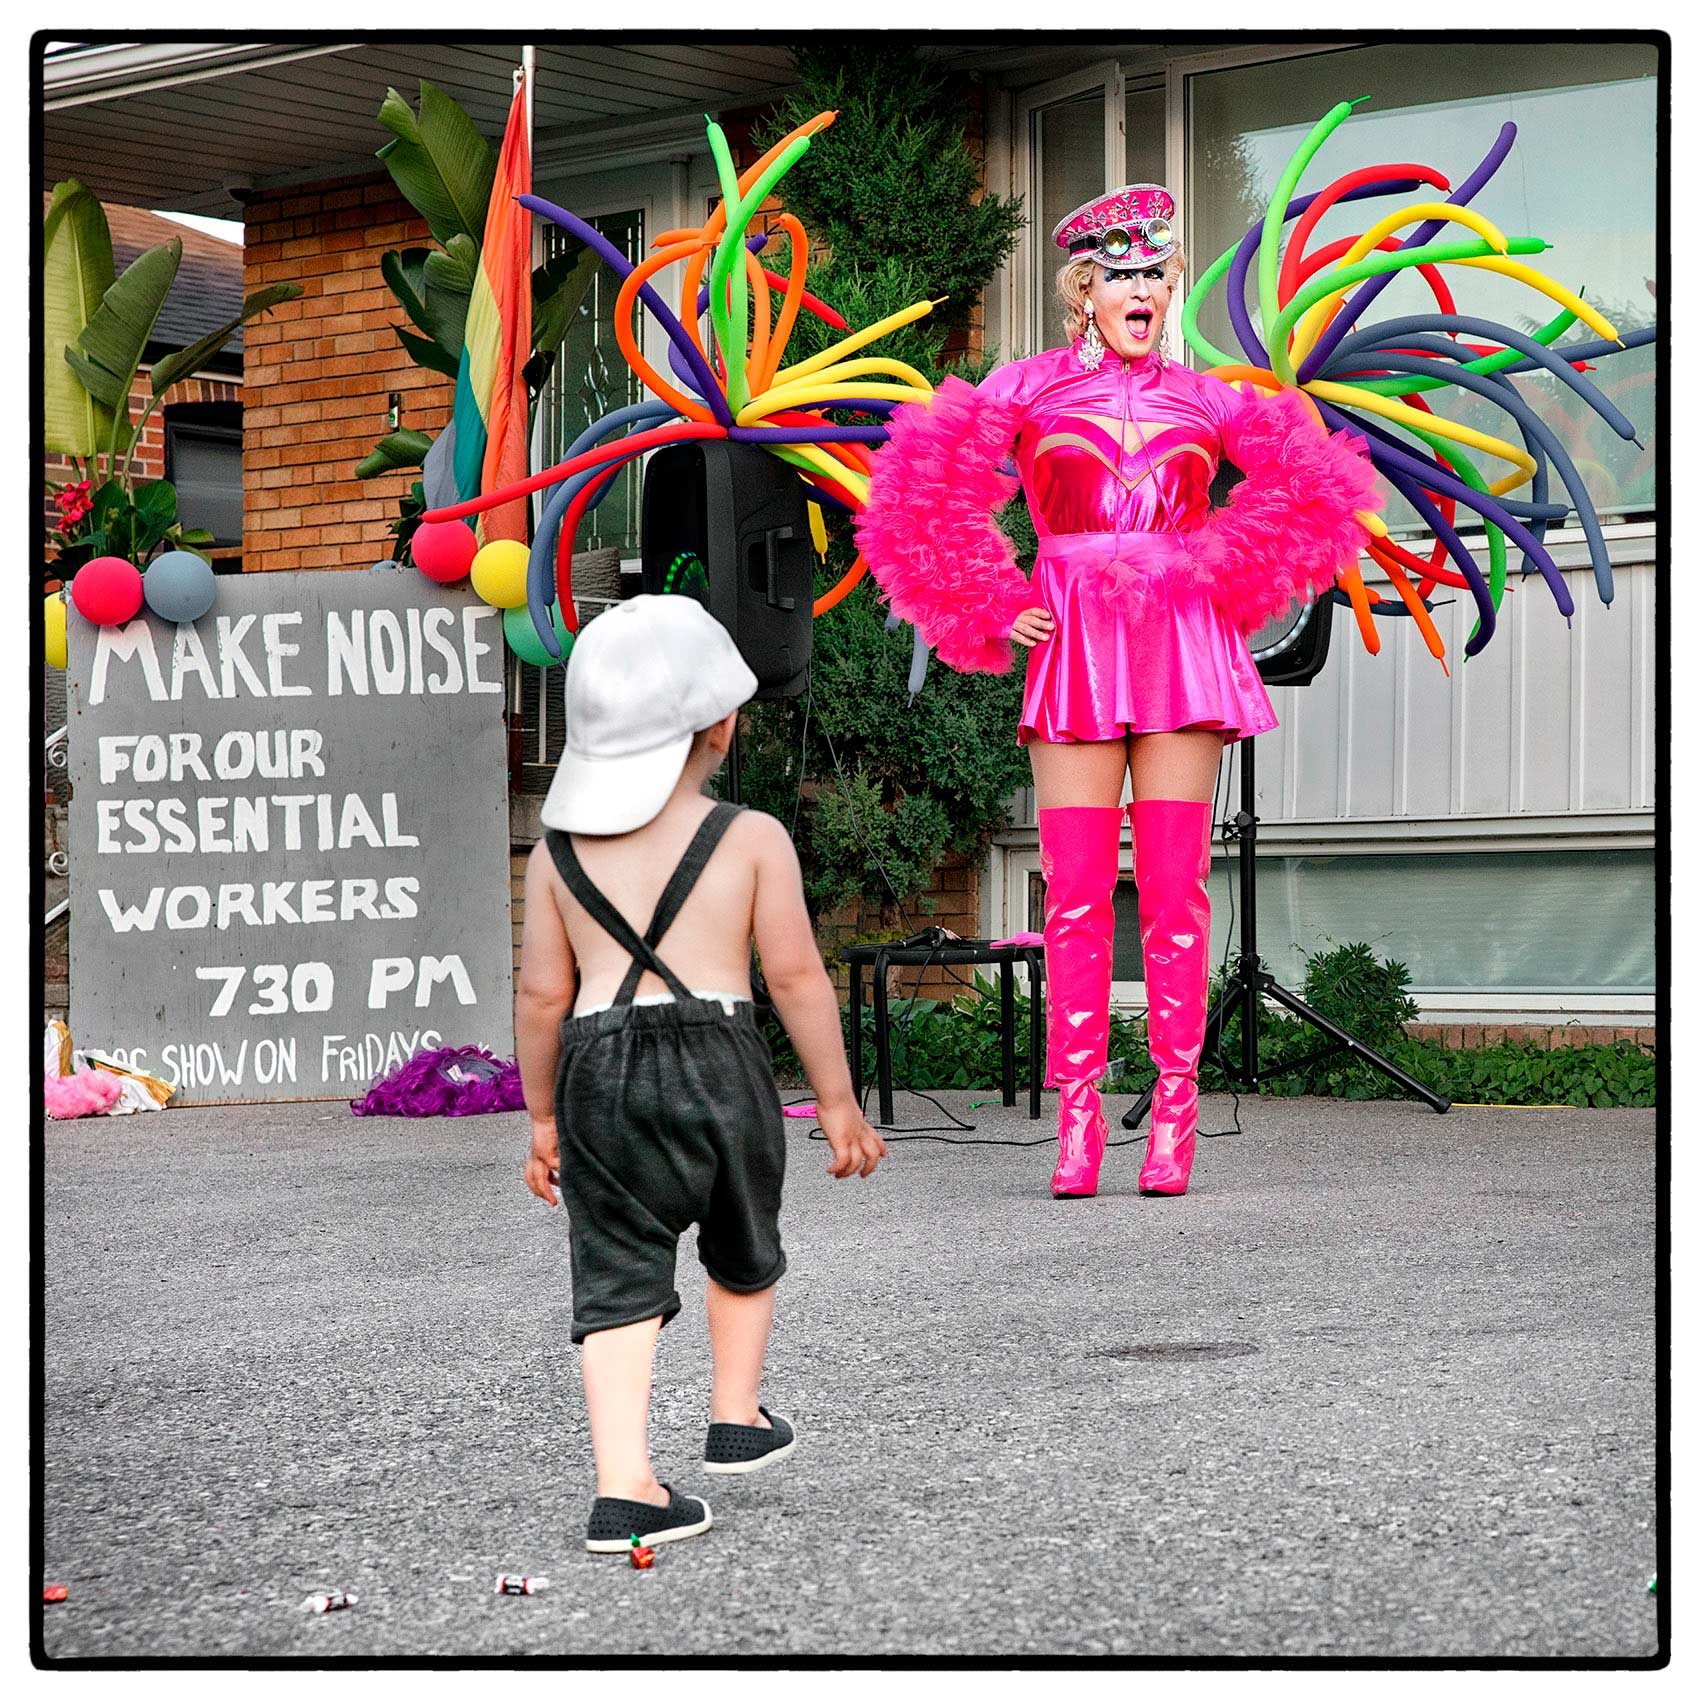 a young boy excitedly walks towards a drag queen in north york during the pandemic